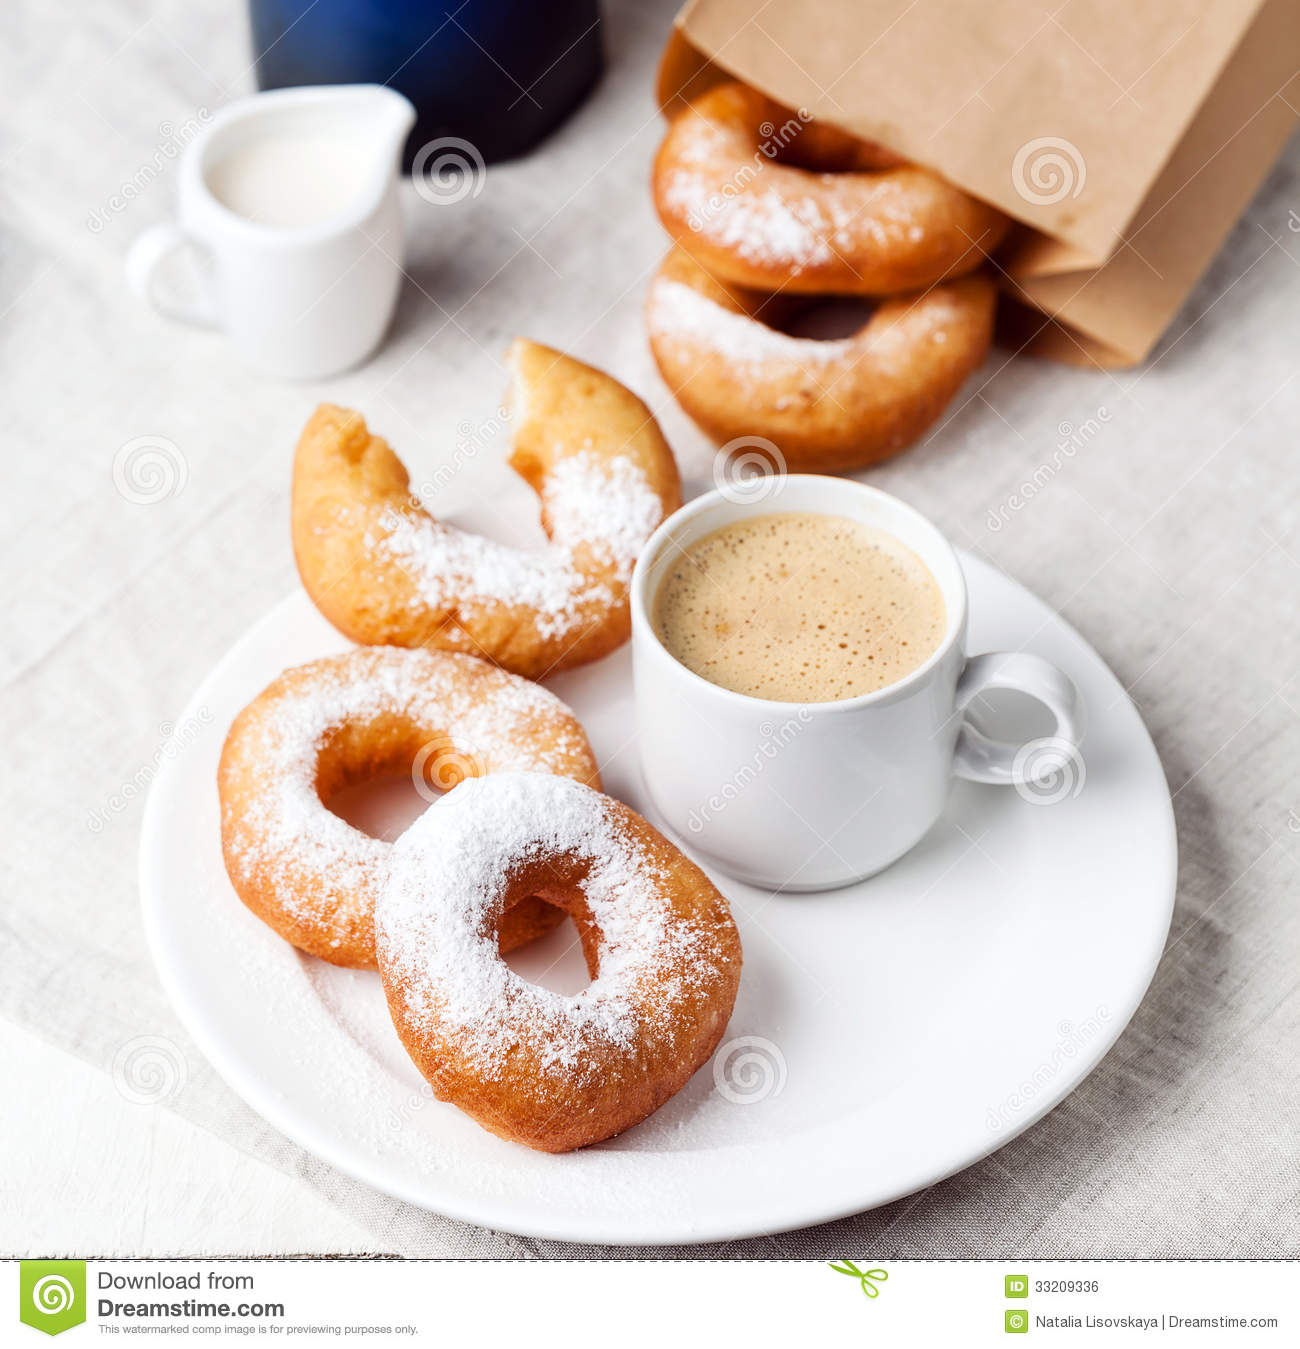 Donuts And Coffee Royalty Free Stock Image - Image: 33209336